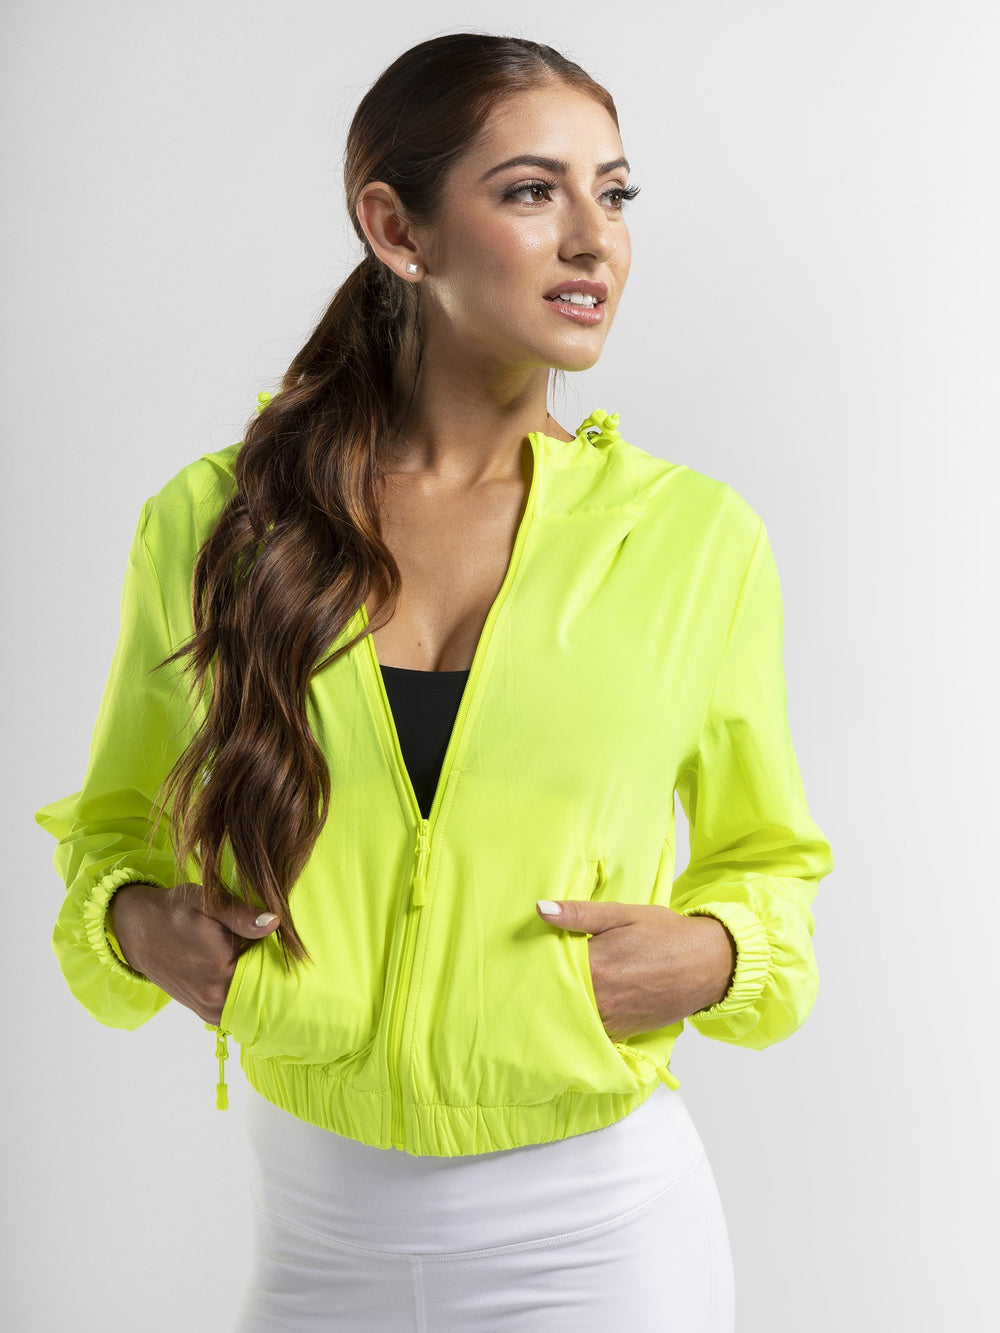 Activewear Outerwear for Women